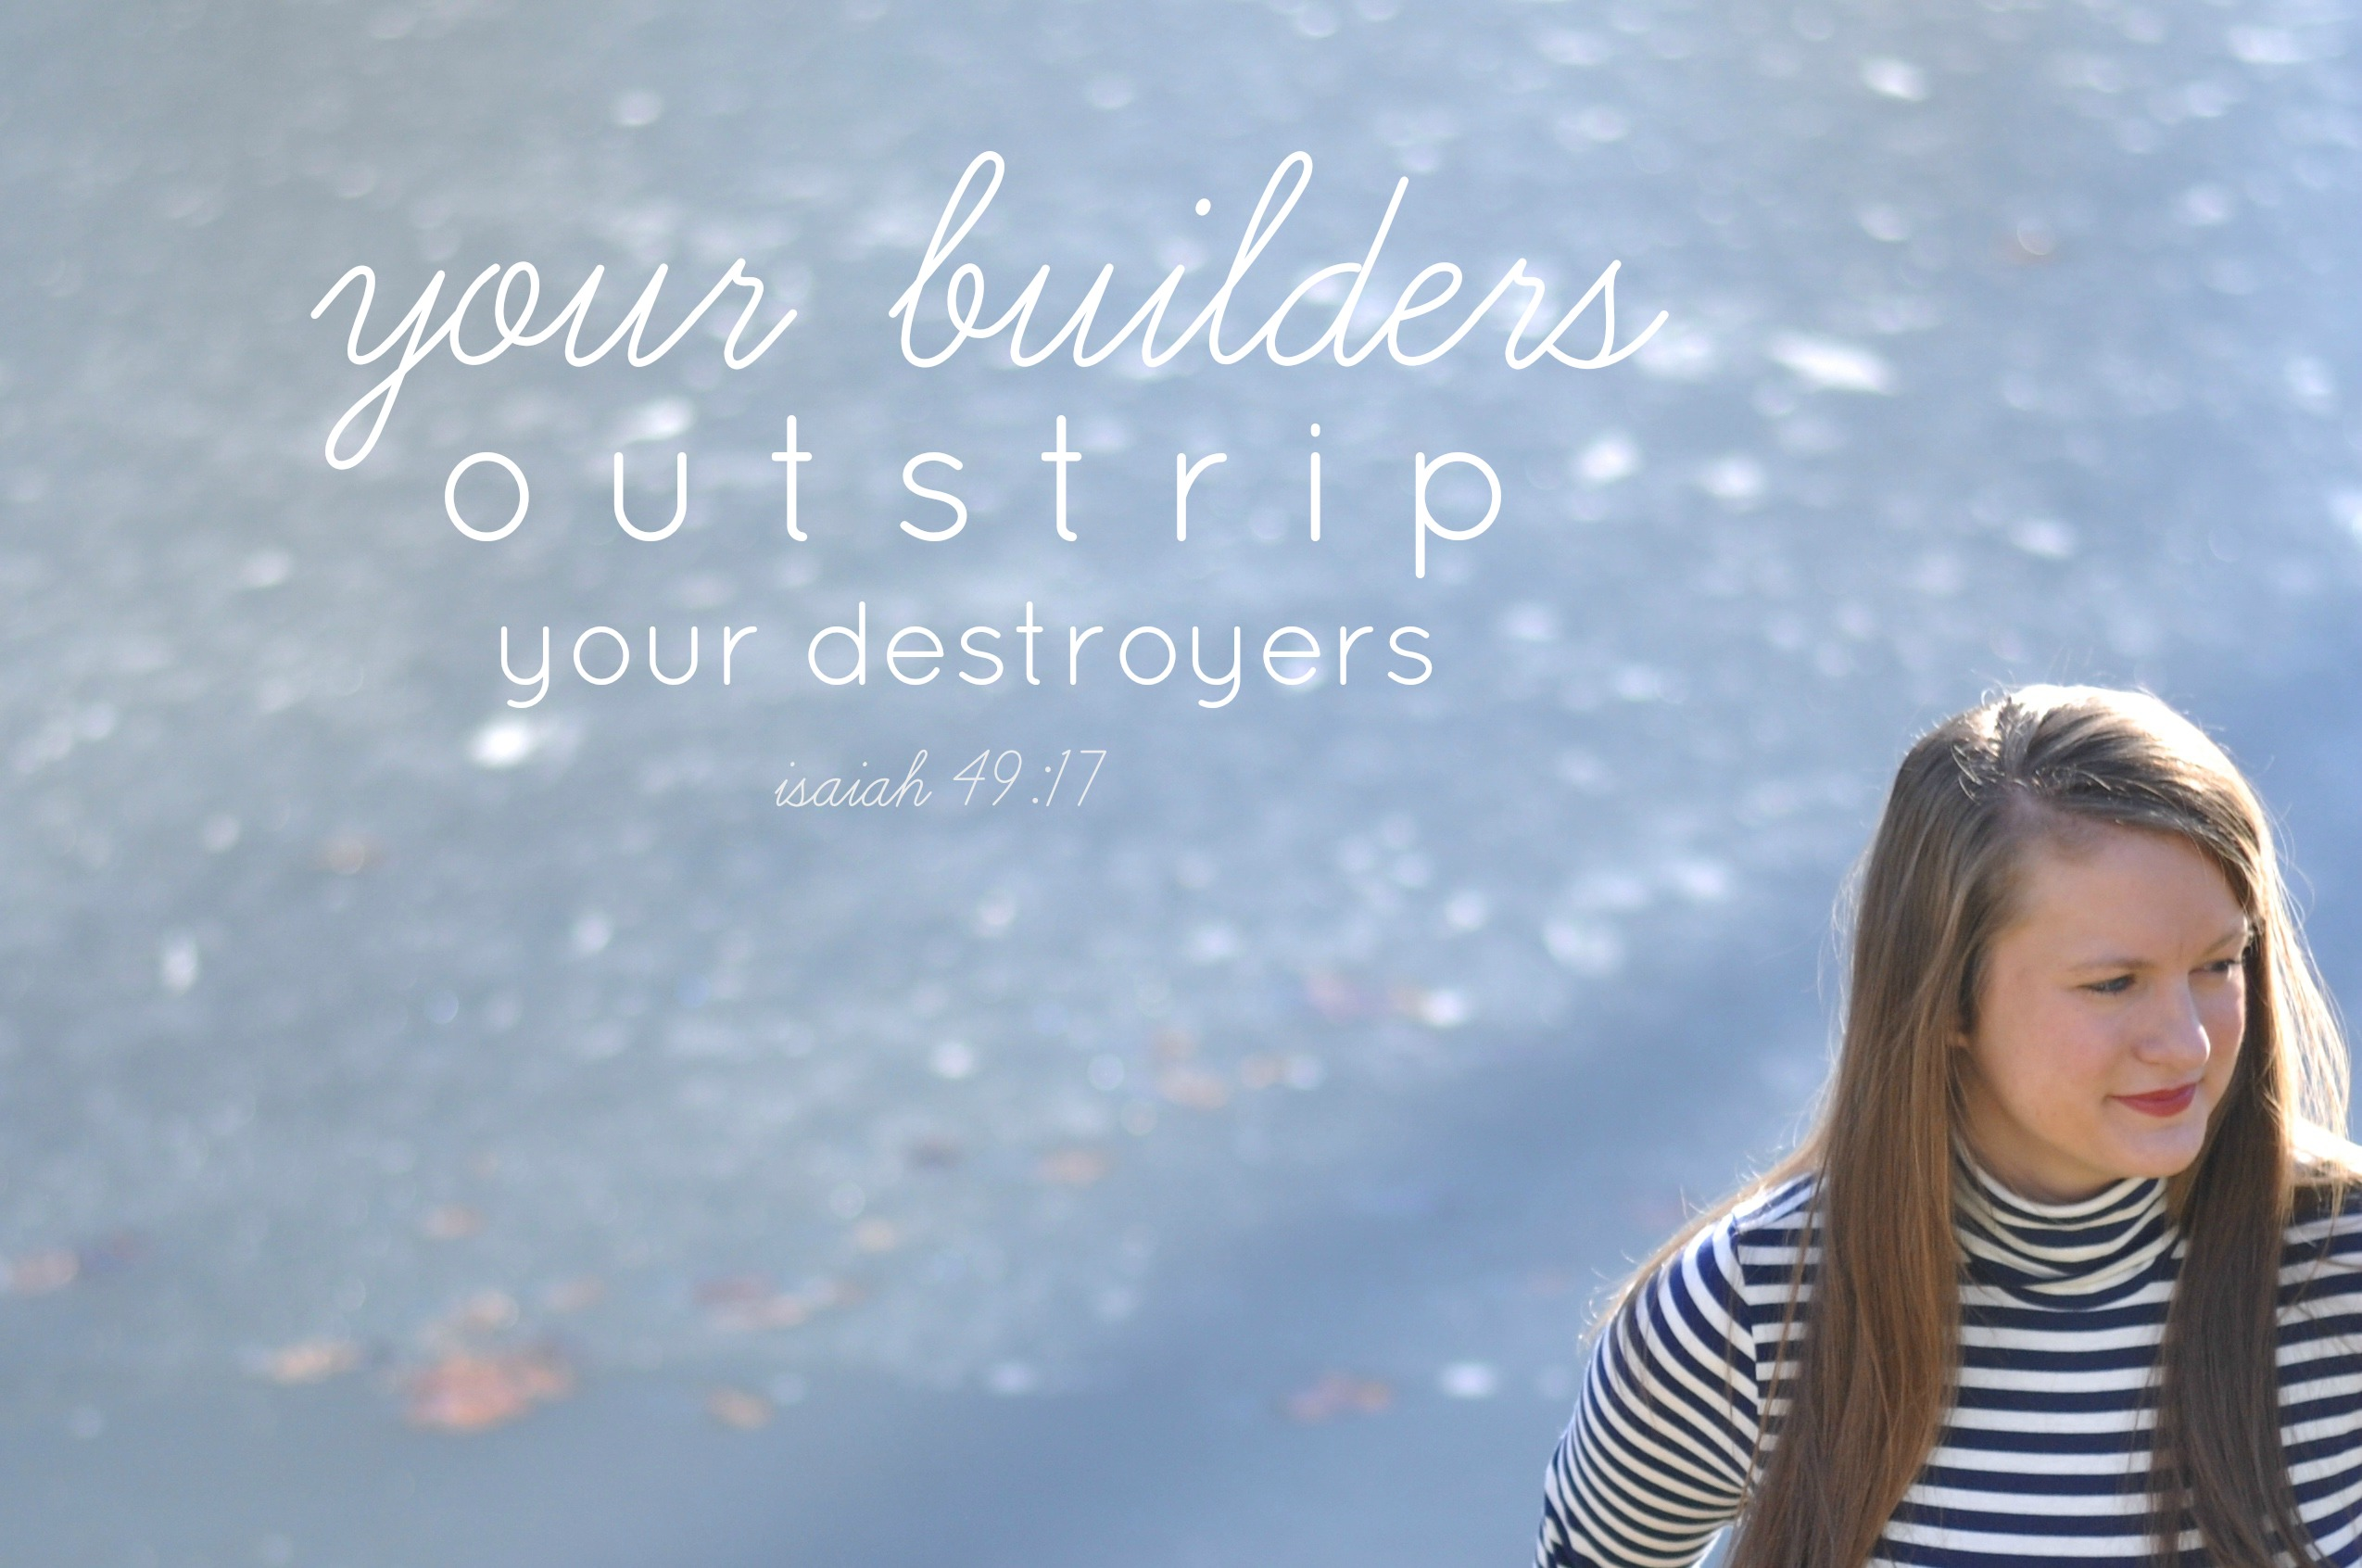 builders-outstrip-destroyers-isaiah